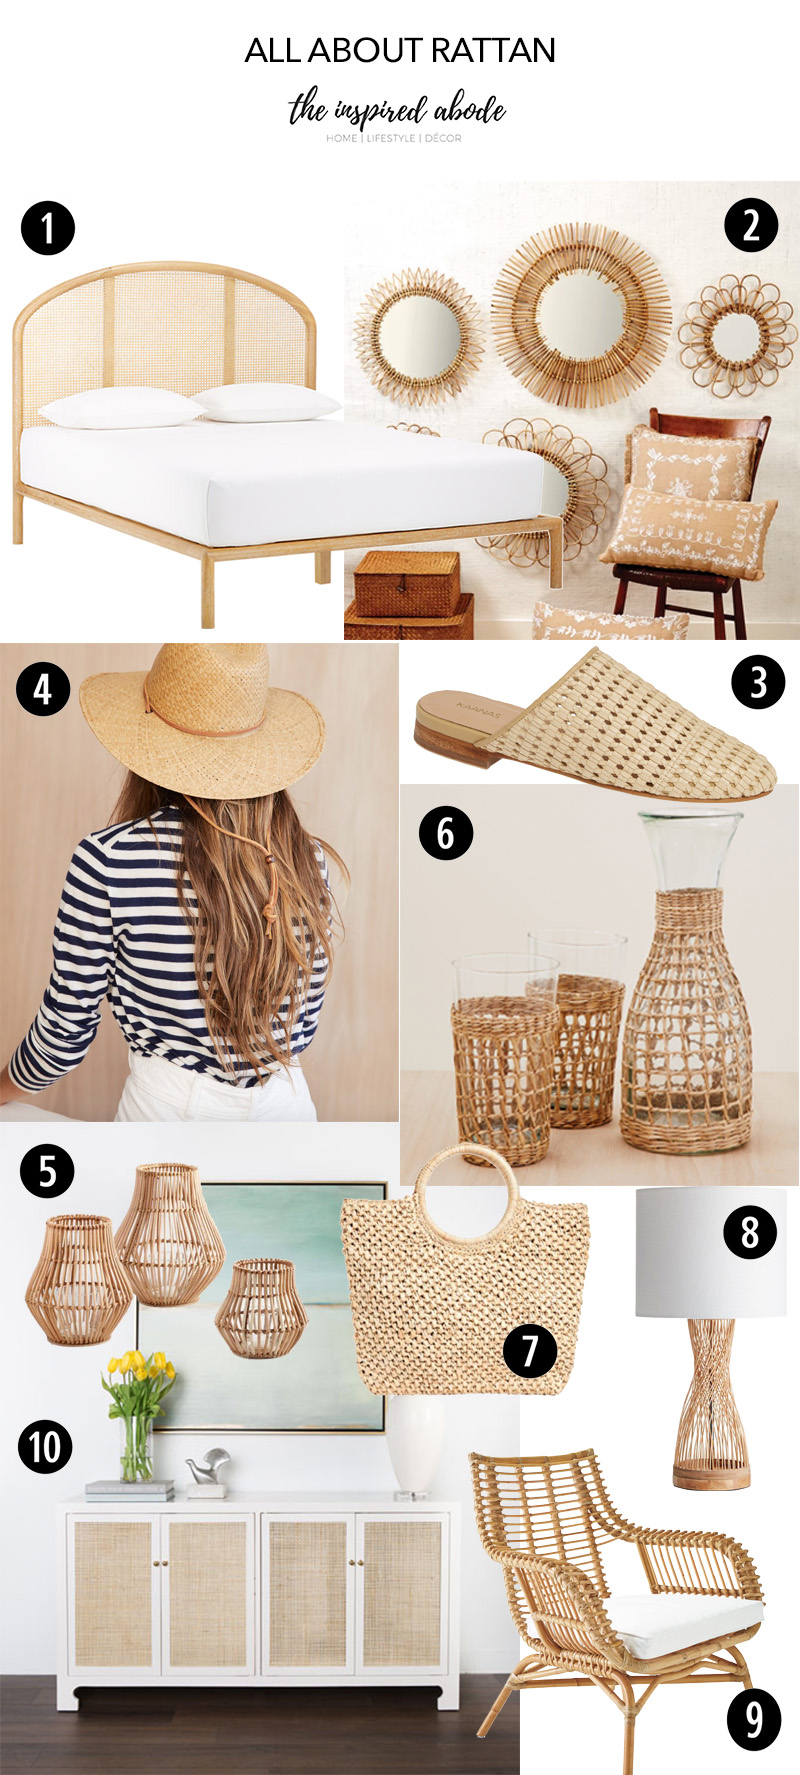 Style Trend: Natural Rattan & Woven Fashion Accessories & Home Décor